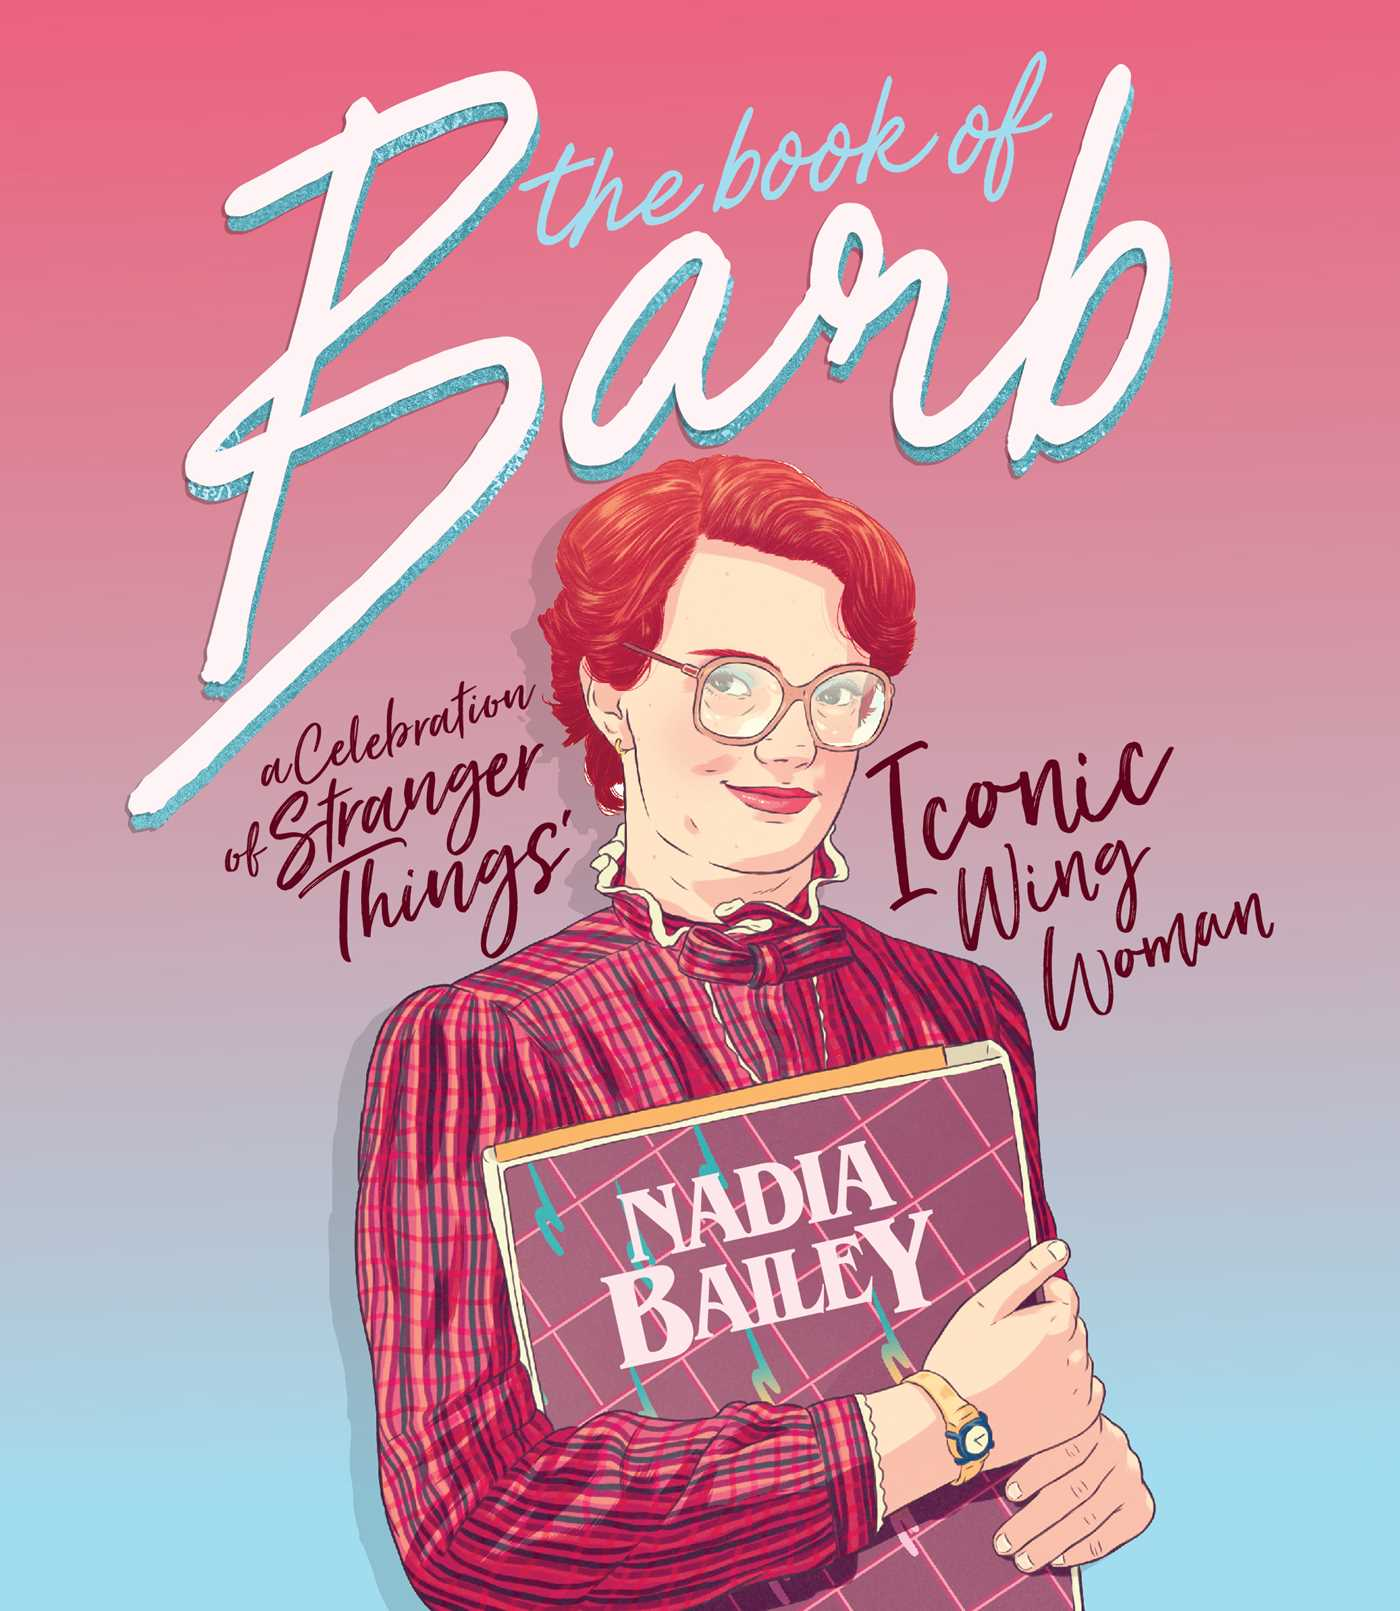 Book of barb a celebration of stranger things iconic wing women 9781925418477 hr